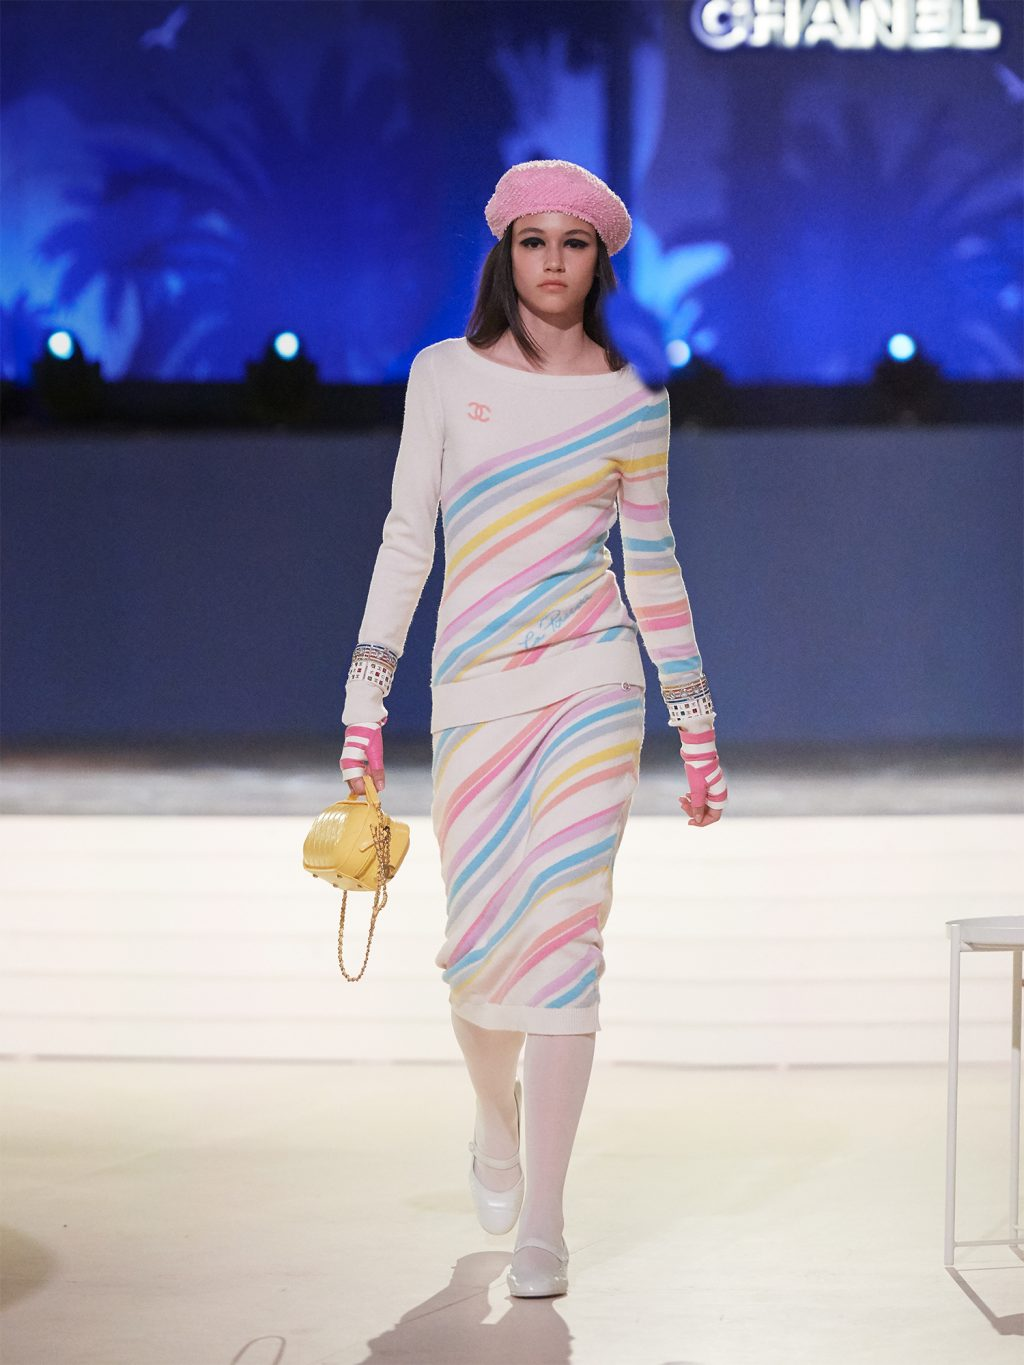 BST Chanel Cruise 2019 ở Bangkok 4